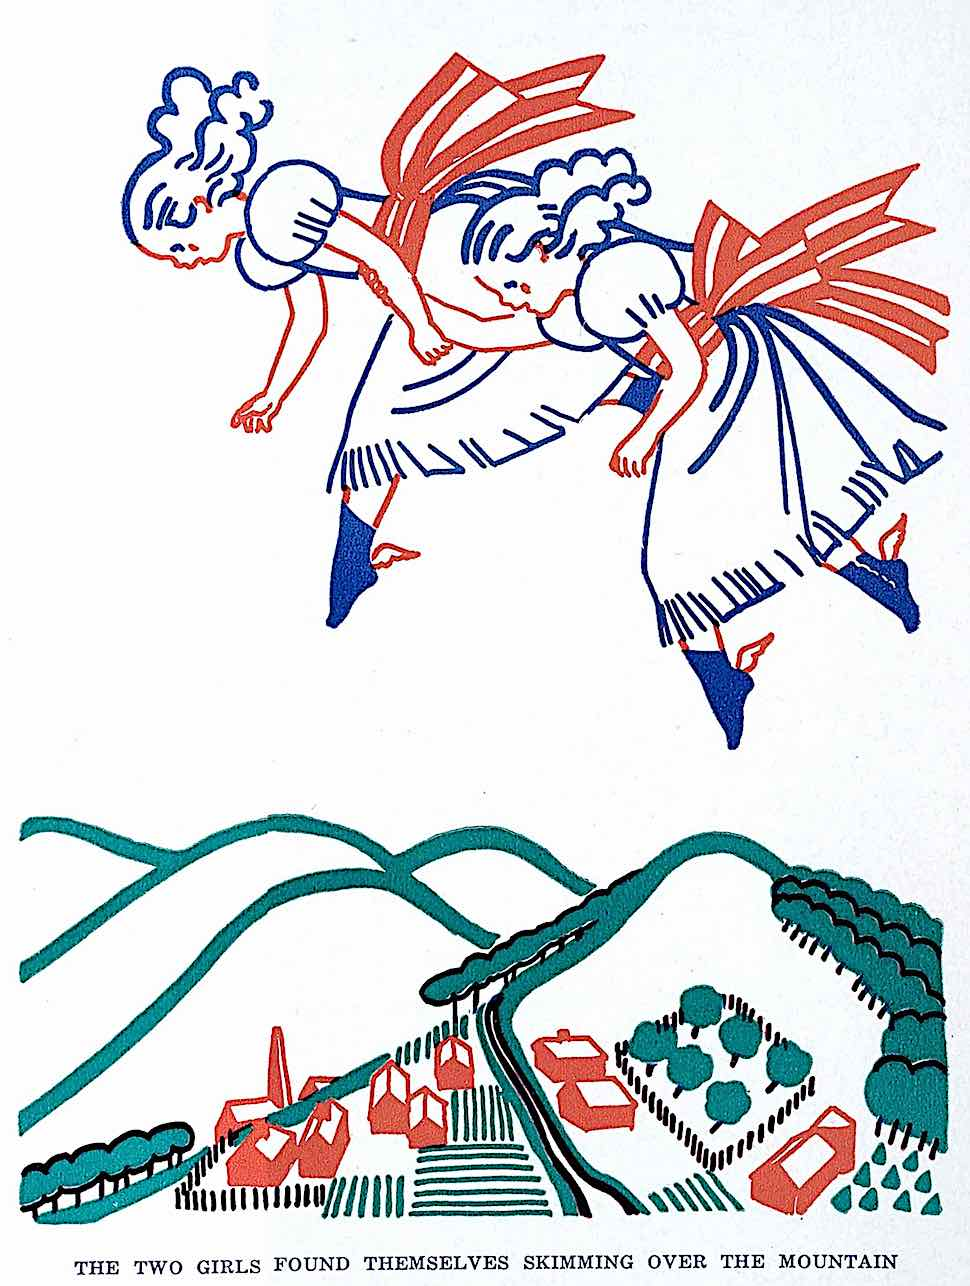 The two girls found themselves skimming over the mountain, an Elizabeth Enright children's book illustration